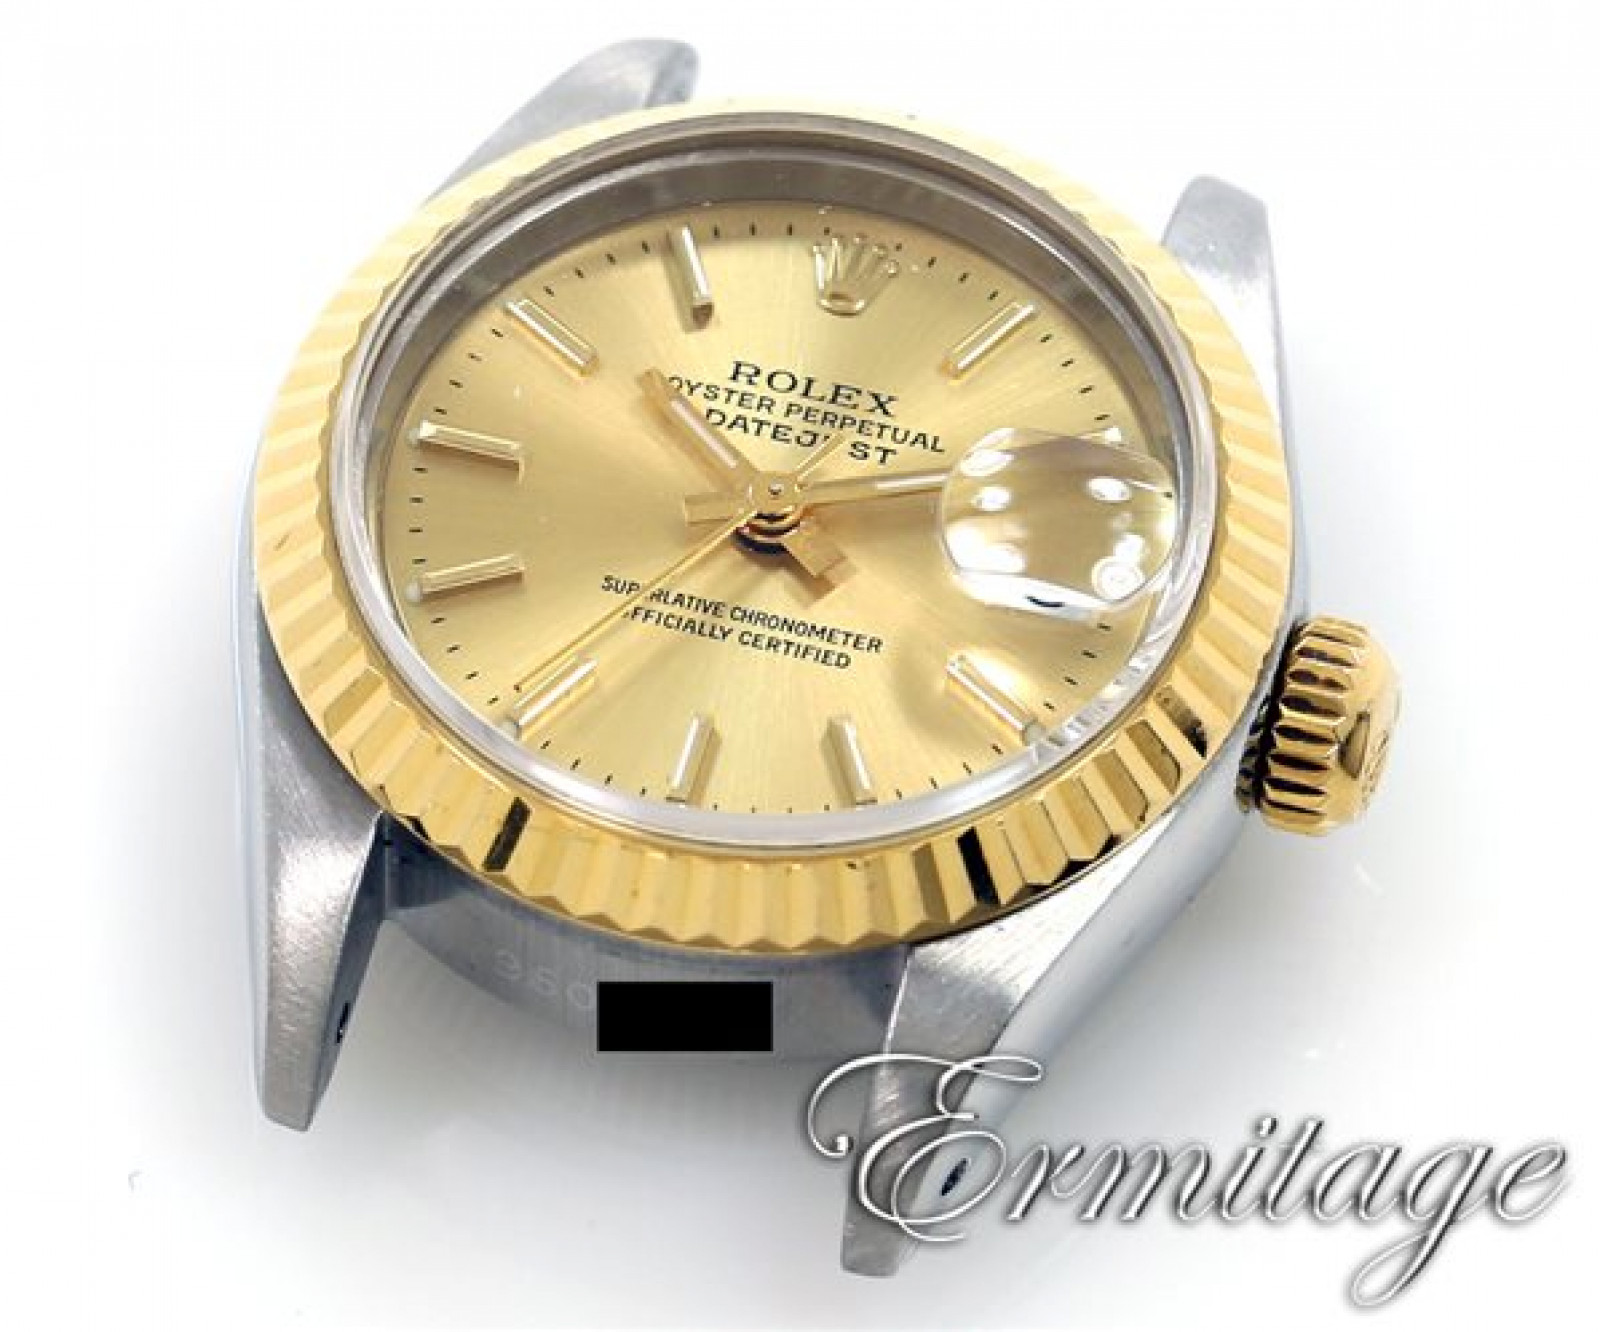 Pre-Owned Rolex Datejust 69173 Year 1986